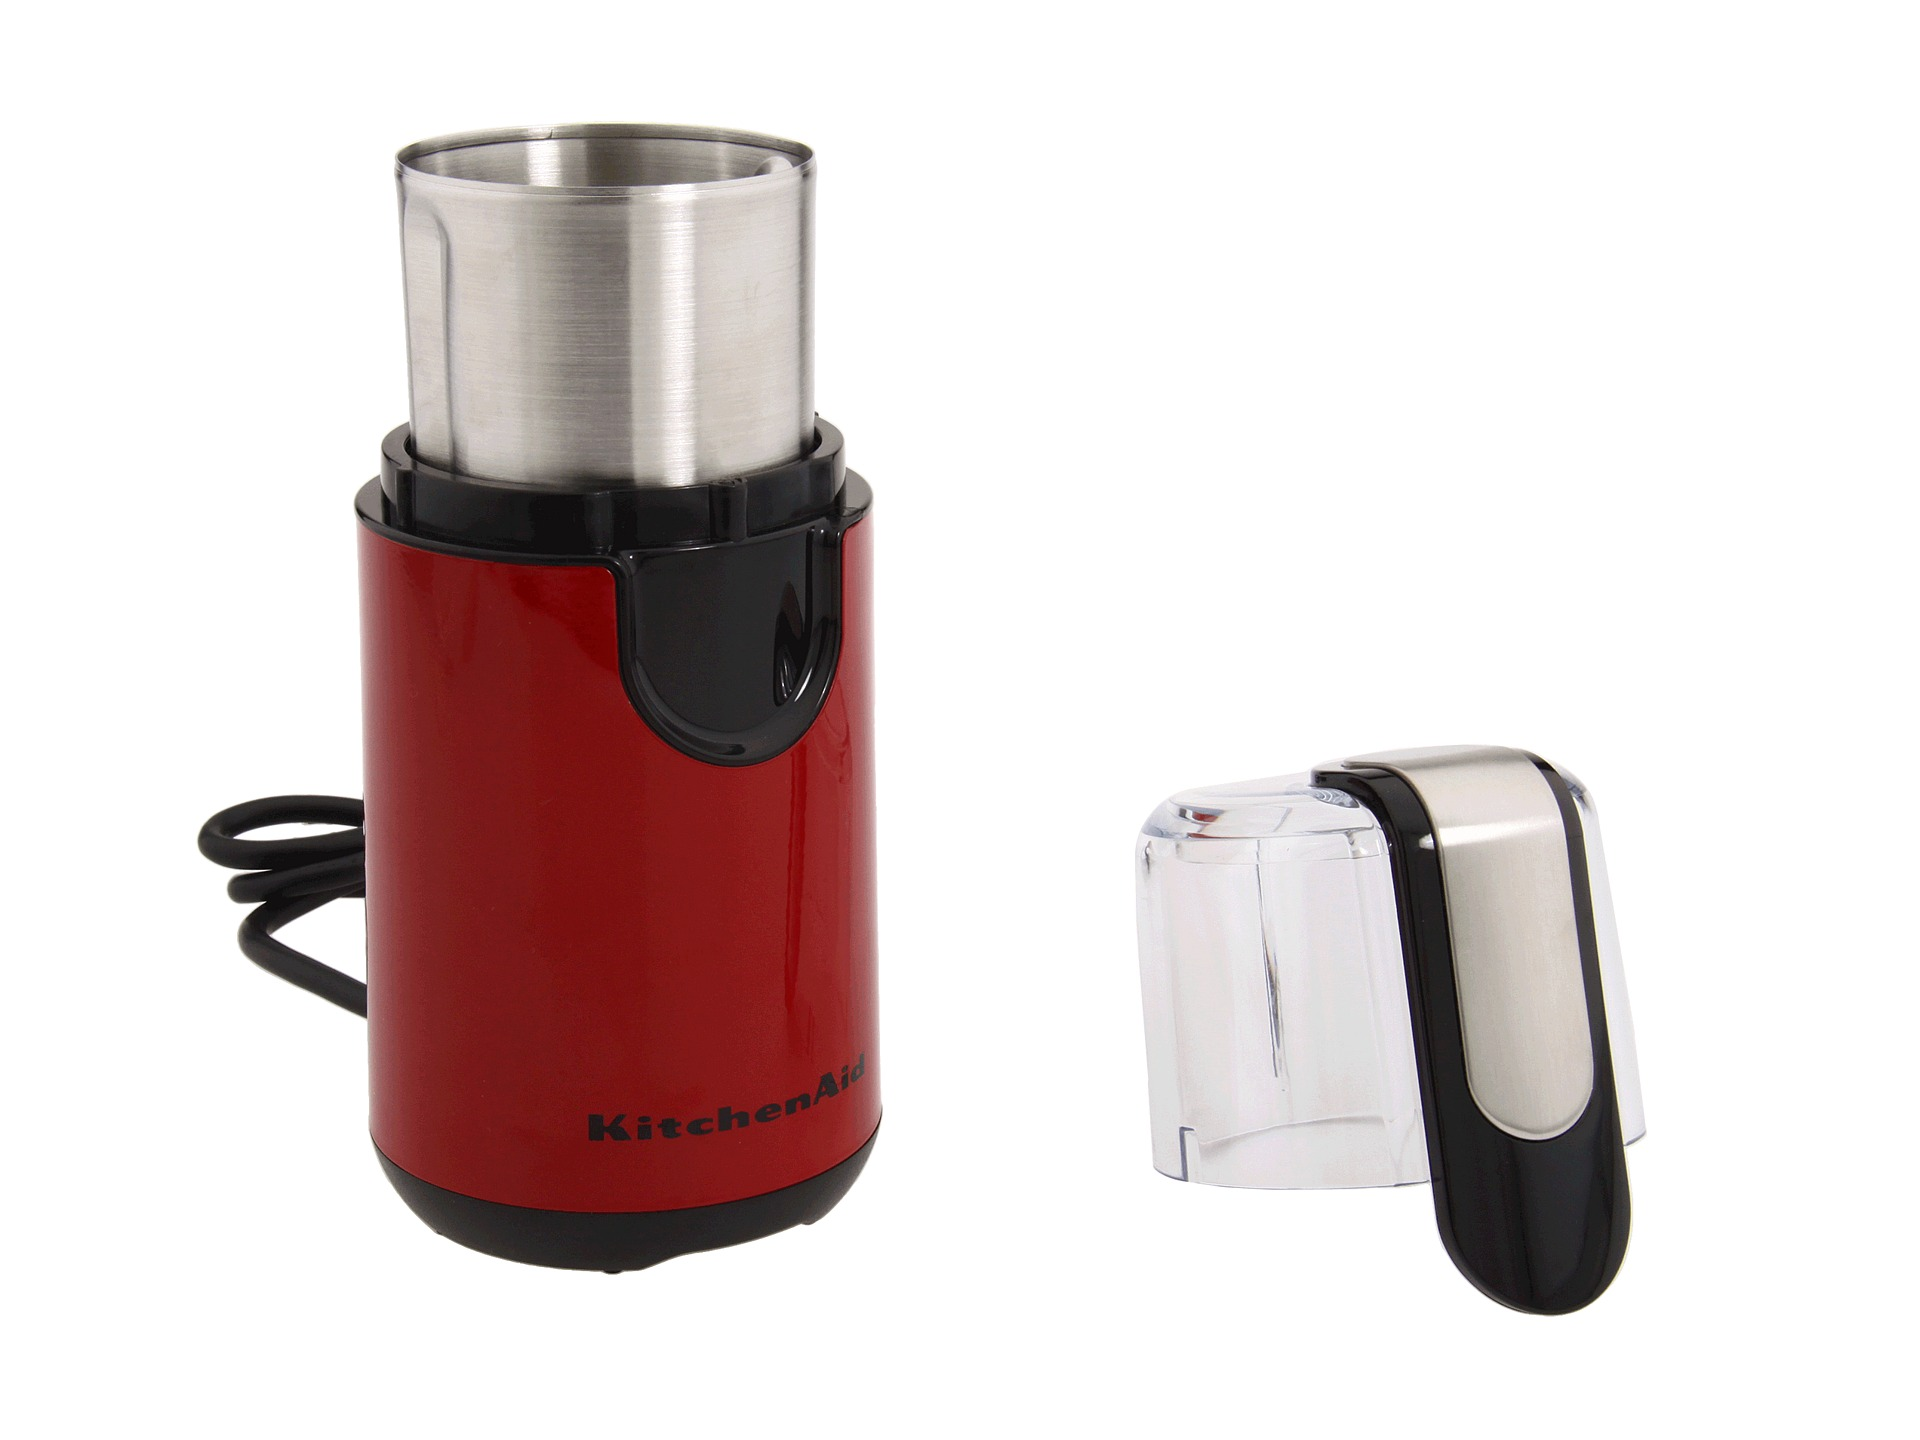 No results for kitchenaid bcg111 blade coffee grinder red - Search Zappos.com